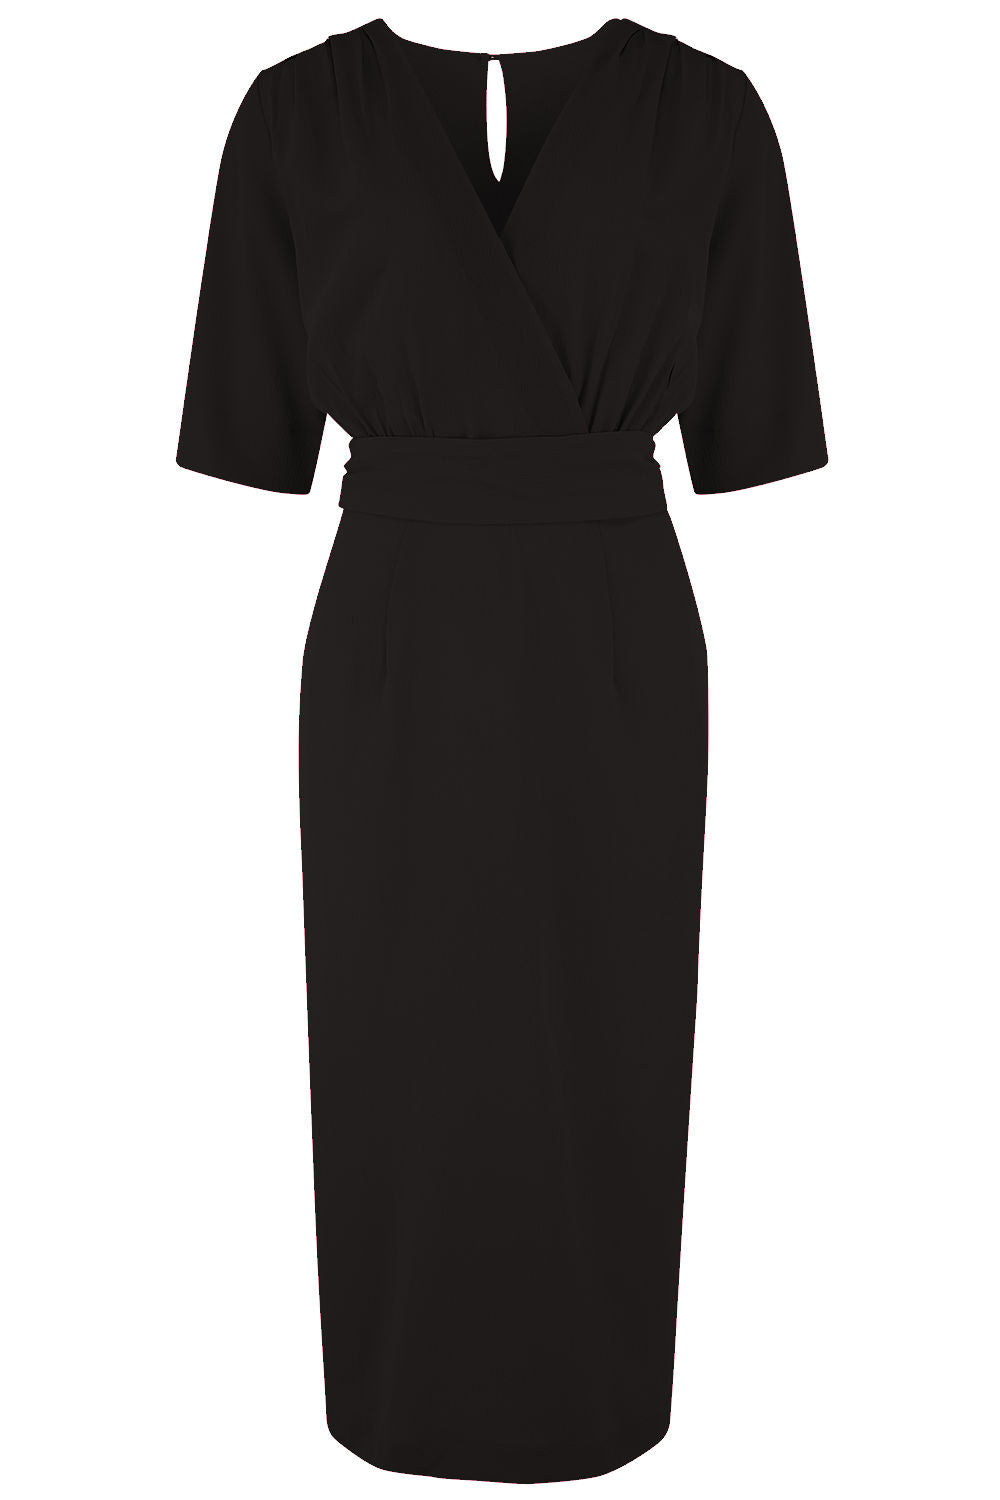 "The ""Evelyn"" Wiggle Dress in Black, True Late 40s Early 50s Vintage Style - RocknRomance True 1940s & 1950s Vintage Style"